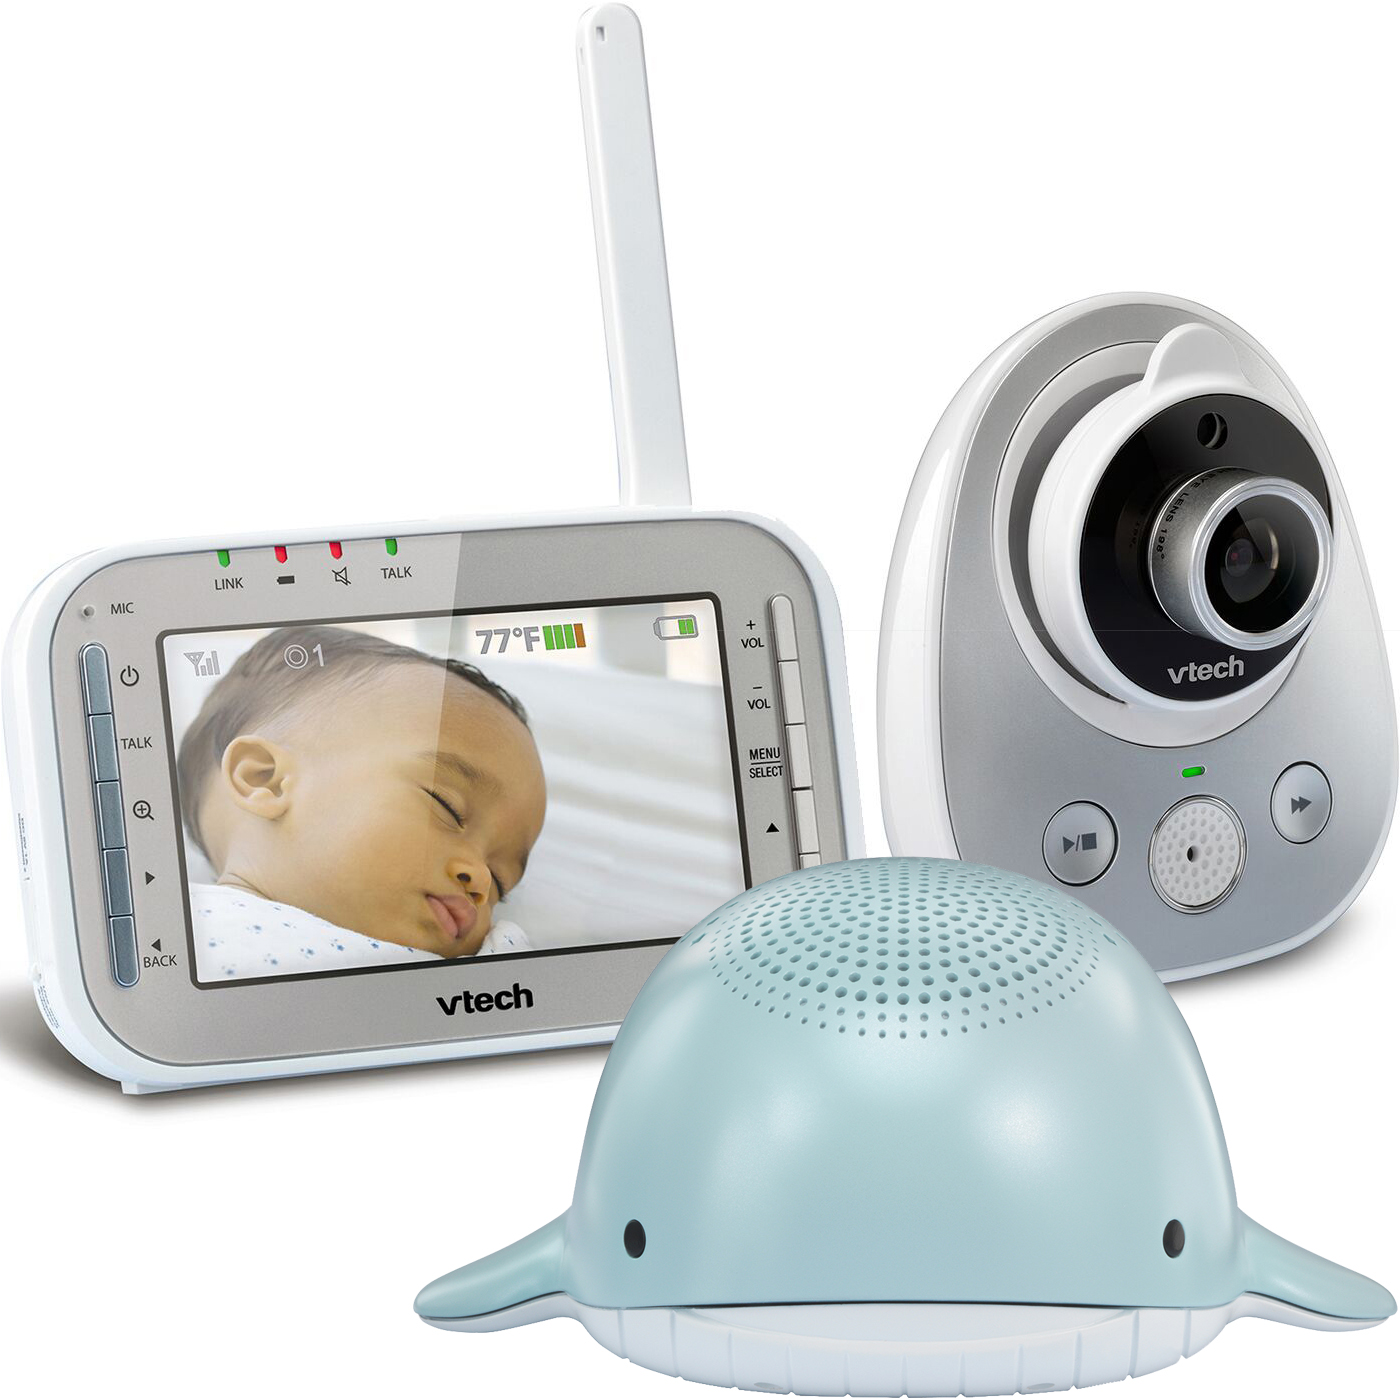 VTech Wide Angle Digital Video Baby Monitor Bundle with (1) VM342 Monitor & (1) BC8312 Wyatt Soother